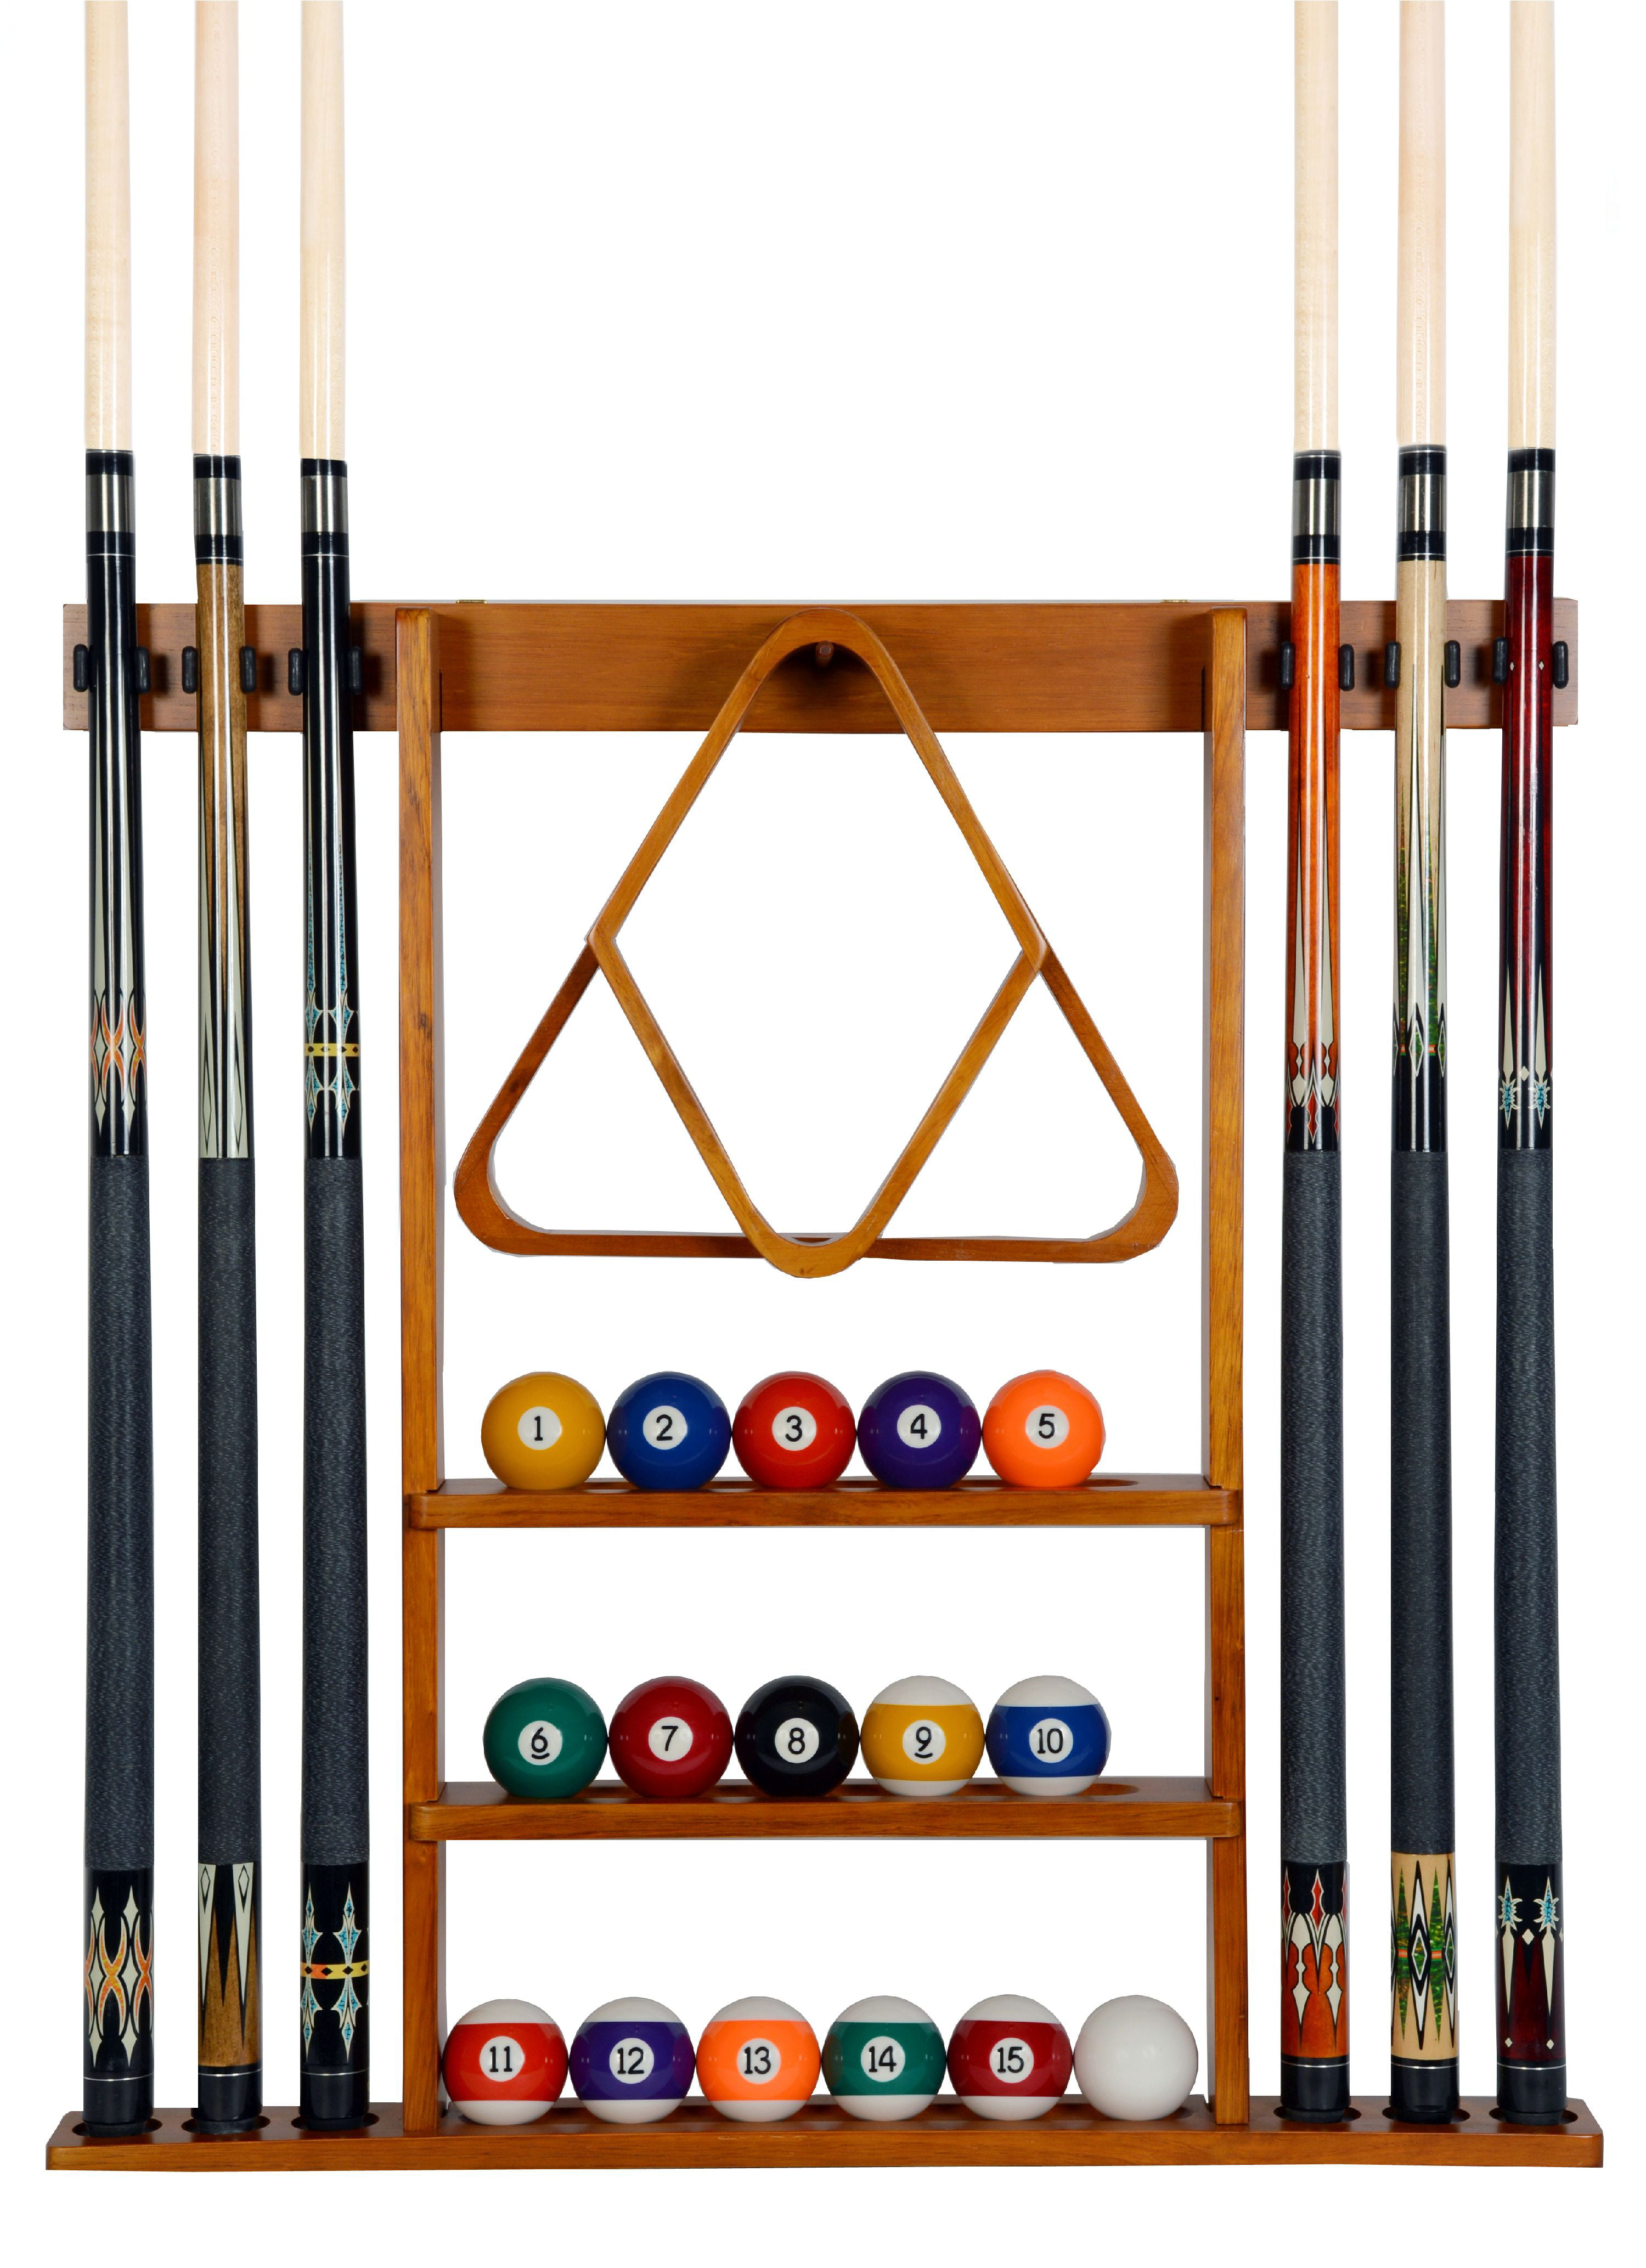 Alomejor Pool Stick Holder Wooden Billiard Cue Racks Pool Cue Stand Pool Cue Wall Mounted Rack Holds Up To 6 Cues